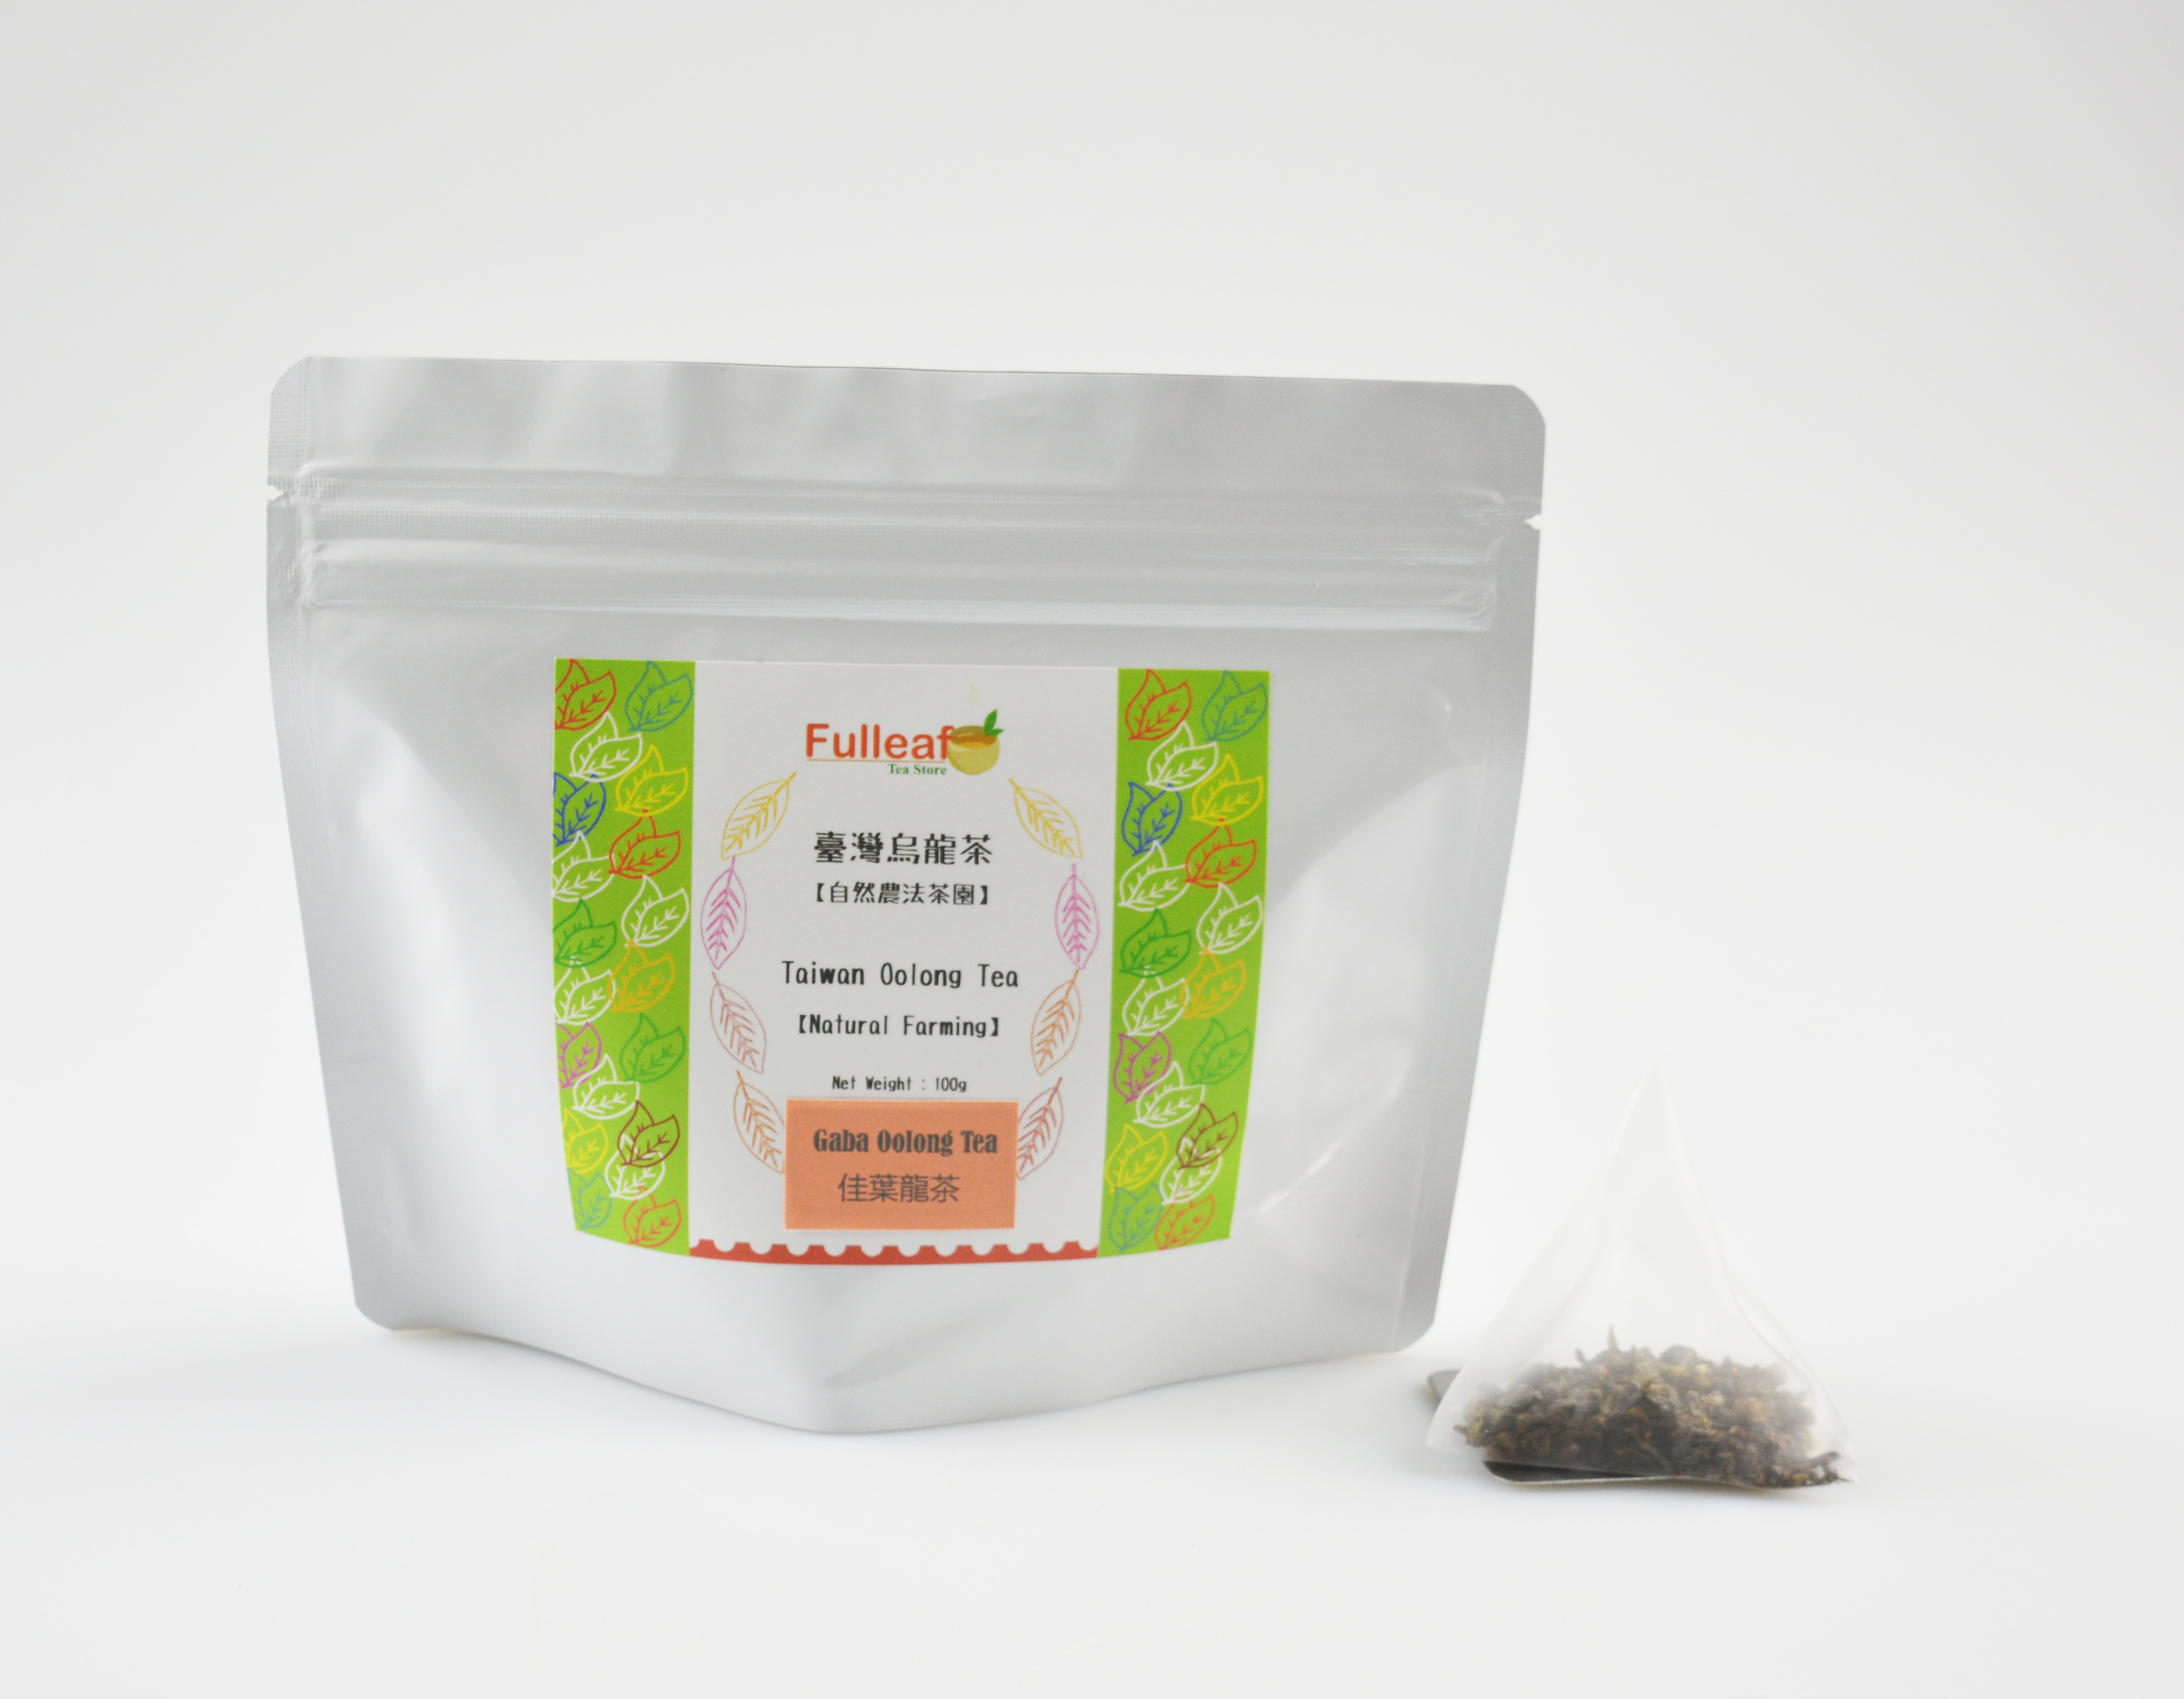 Gaba Oolong Tea (Tea Bag) 佳葉龍茶